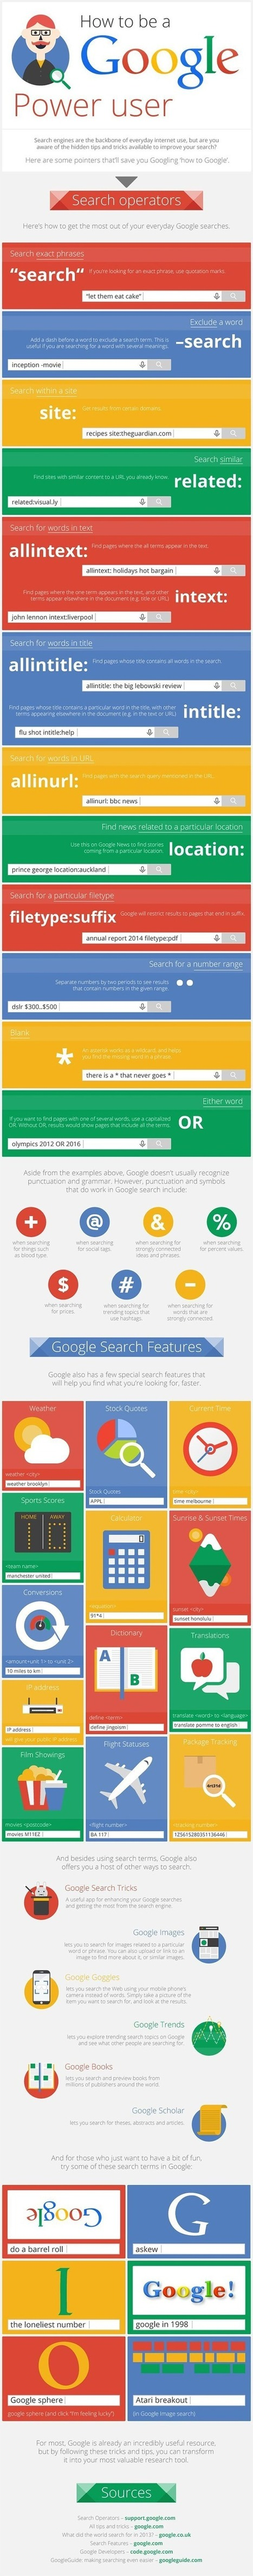 46 Hidden Tips and Tricks to Use Google Search Like a Boss: Infographic | Social Media Resources & e-learning | Scoop.it